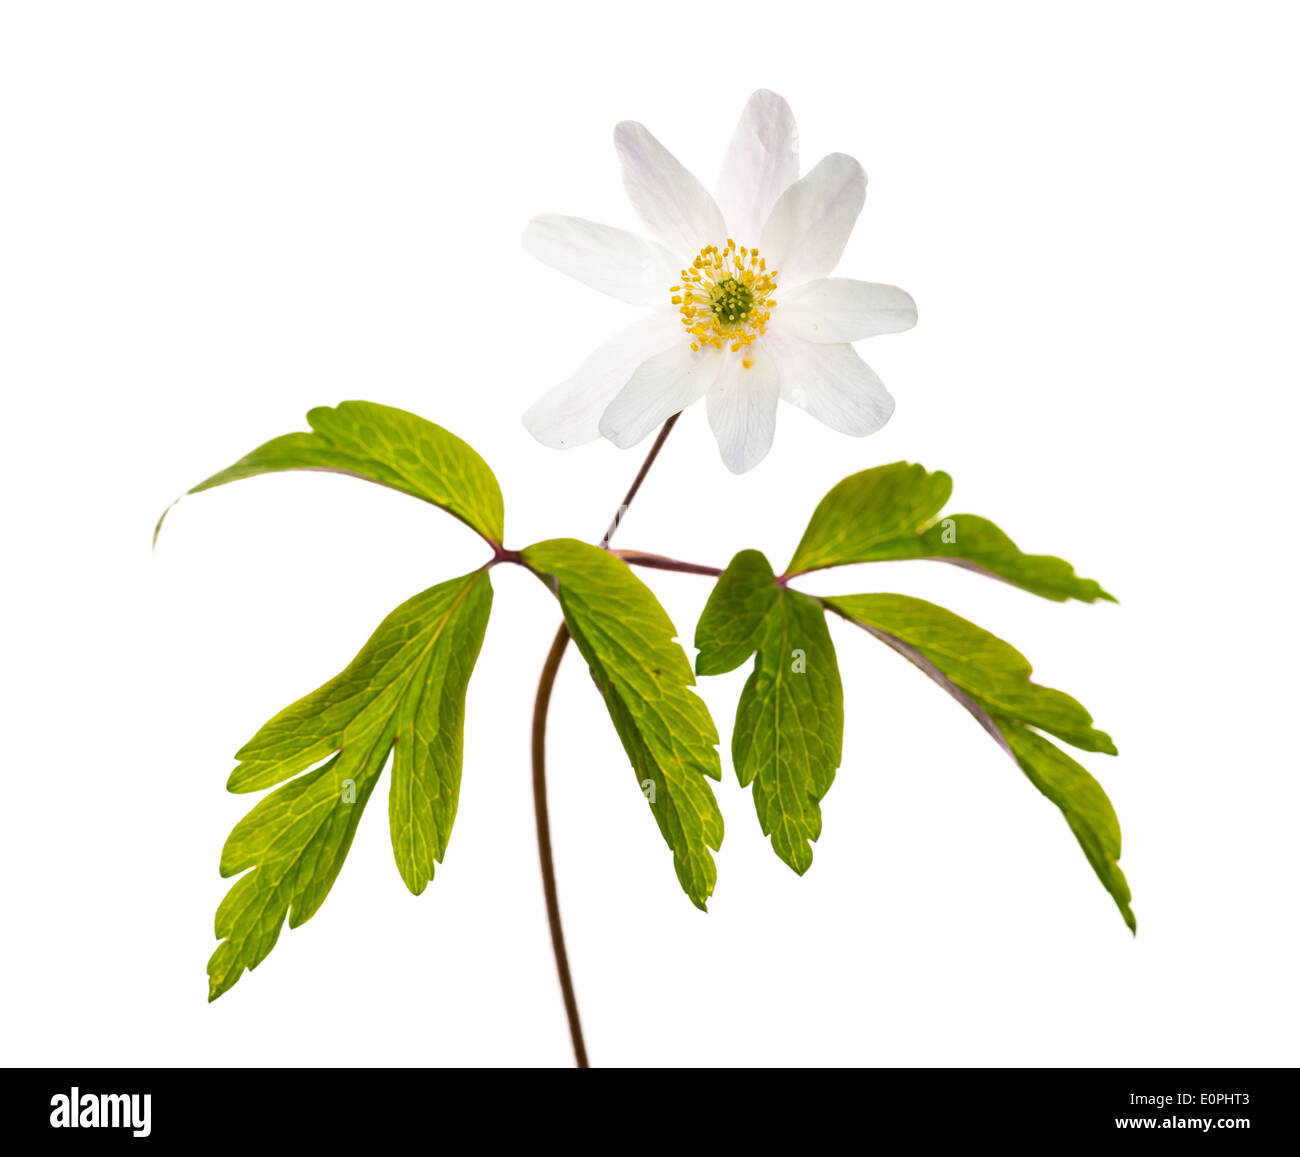 Wood Anemone against a white background - Stock Image